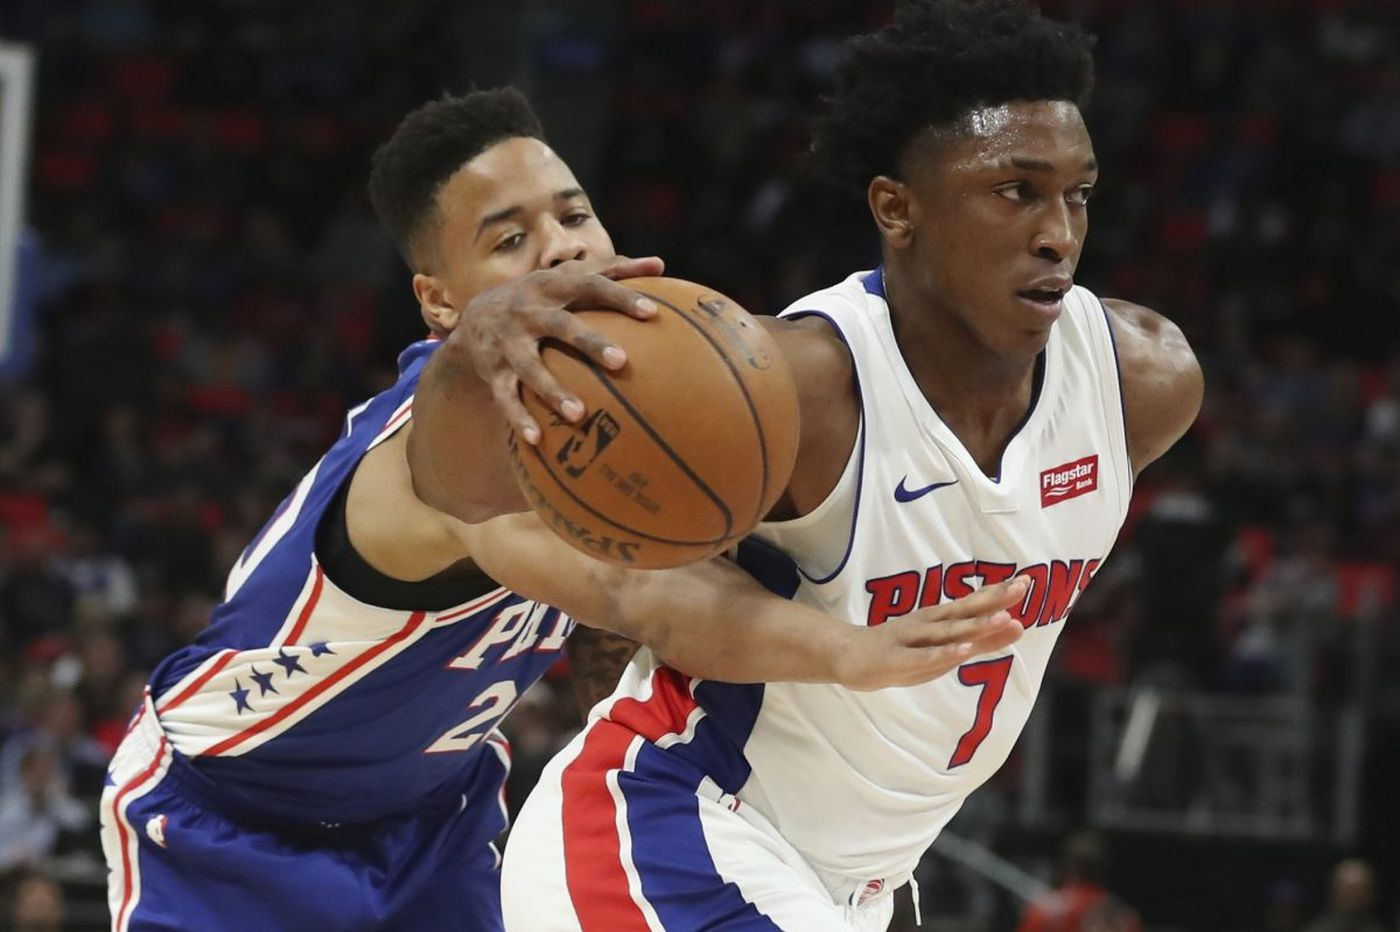 Sixers 115, Pistons 108: JJ Redick shoots the lights out and other quick observations